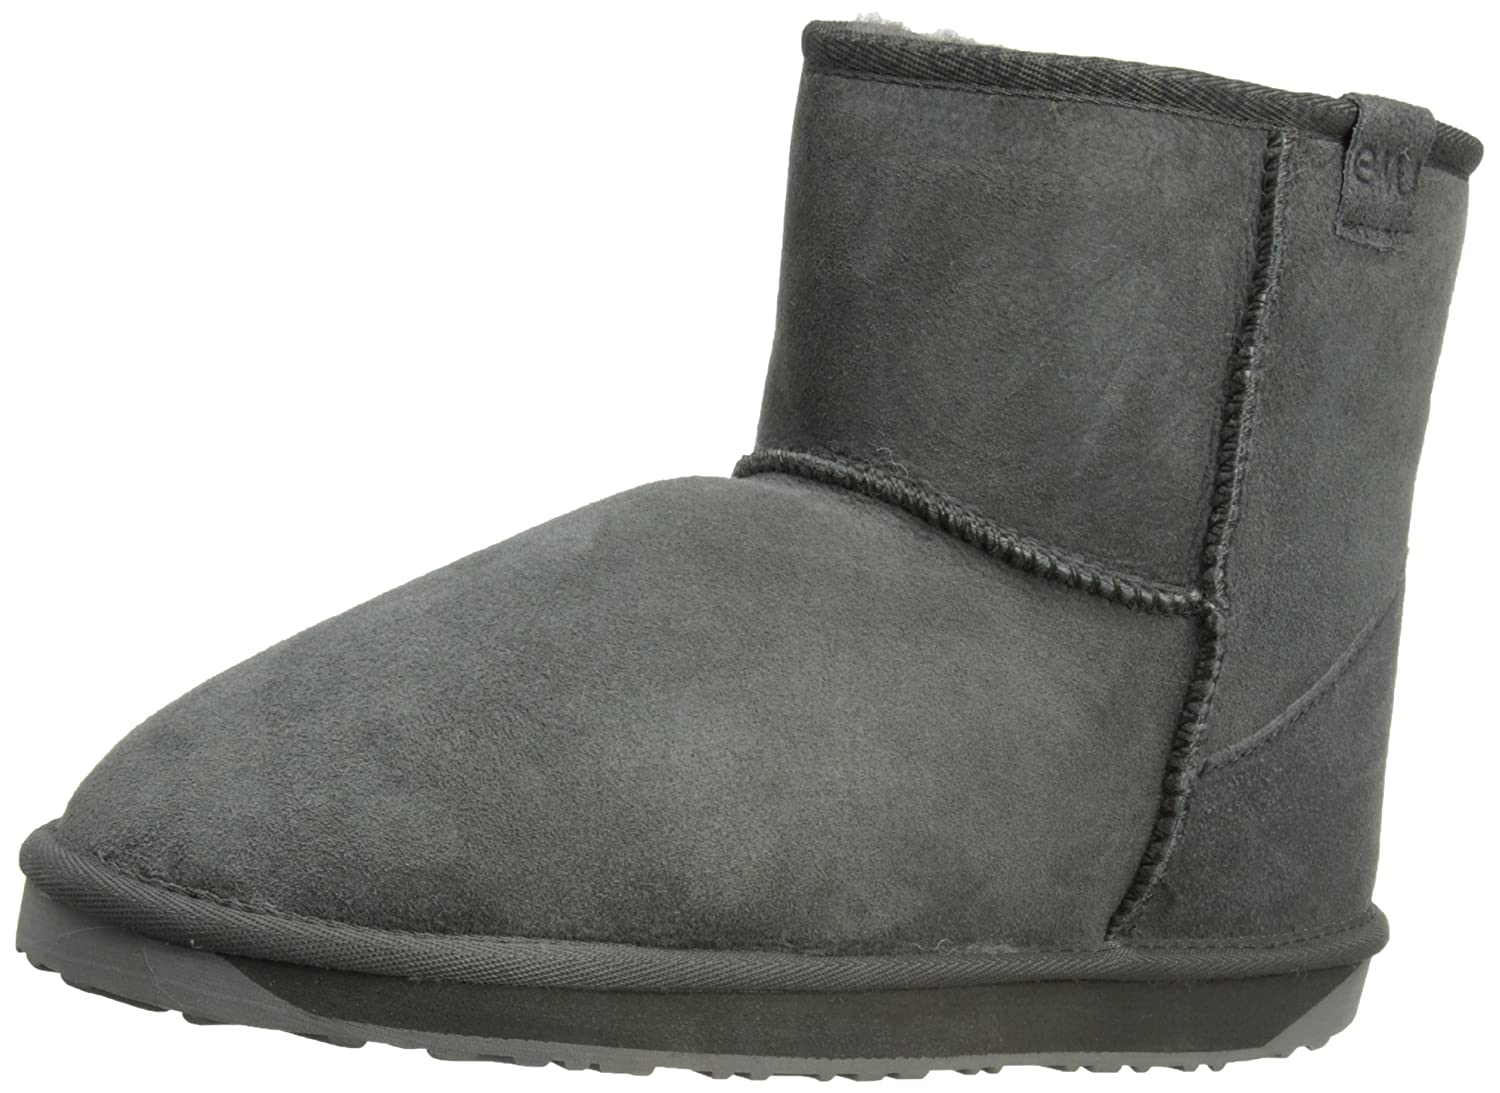 EMU Charcoal Australia Stinger Mini, - bottes femme Gris - Stinger Charcoal f023f80 - digitalweb.space